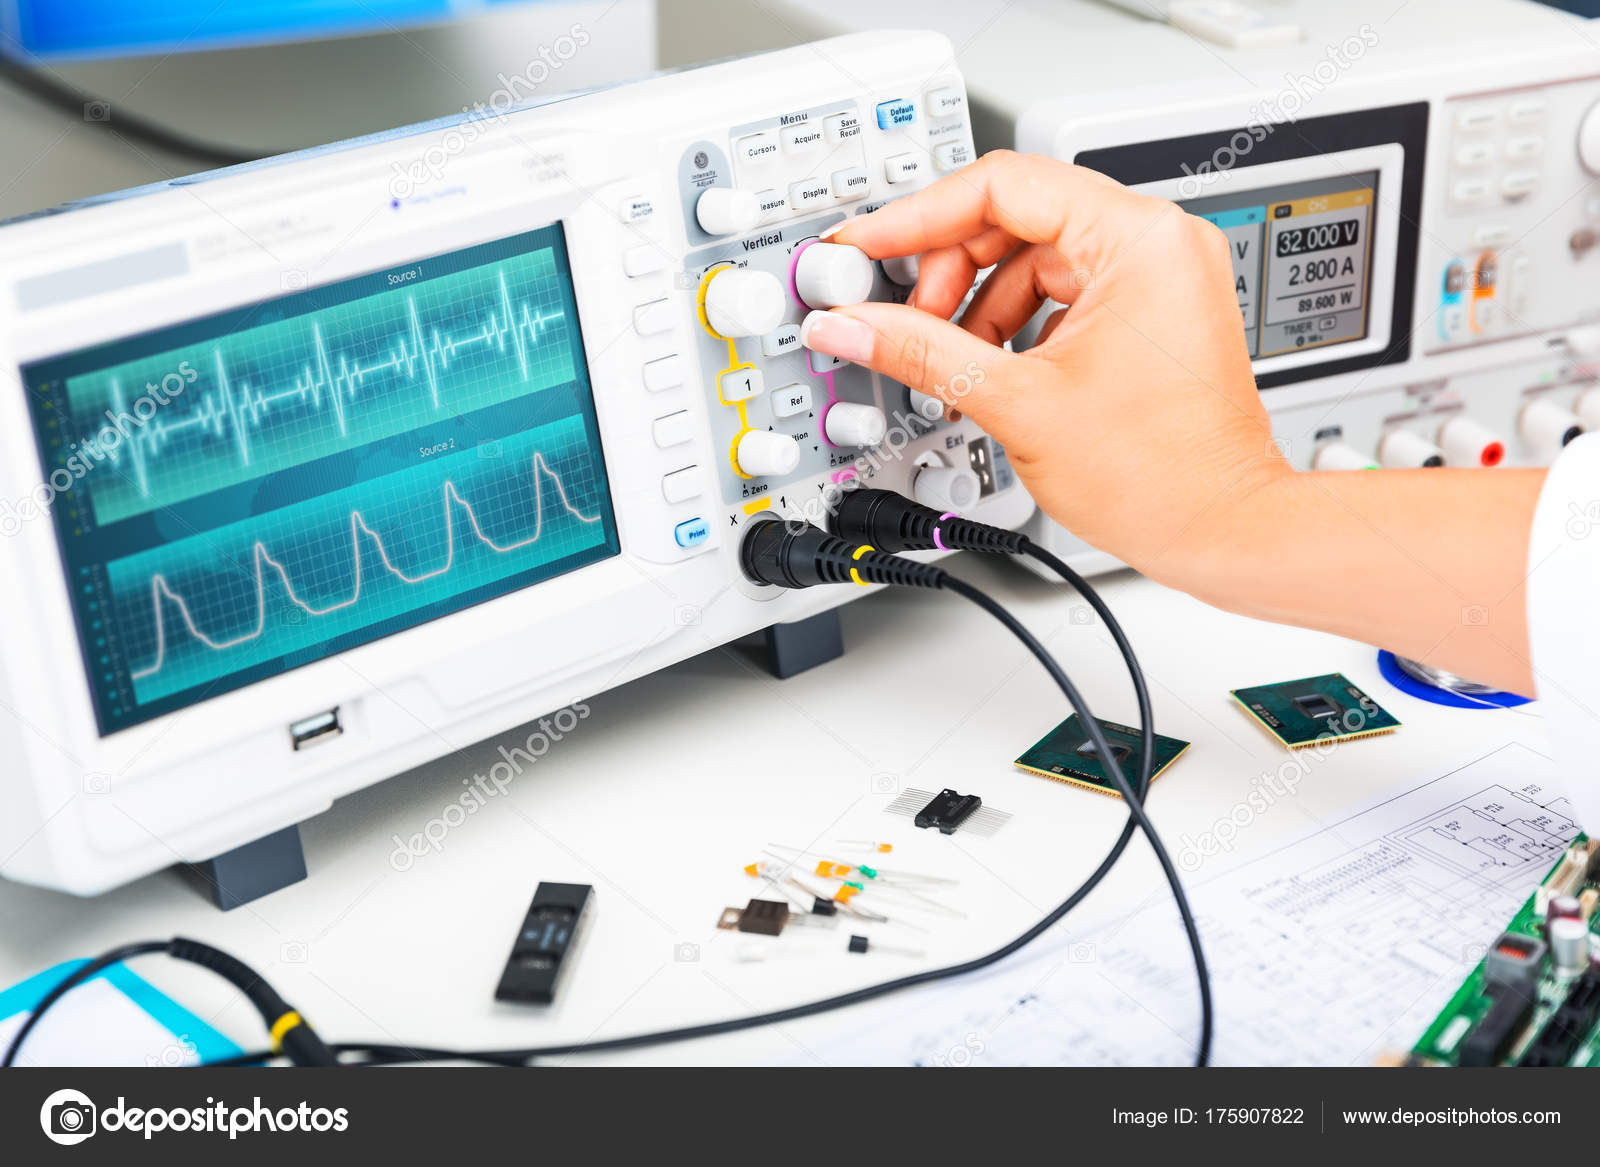 Oscilloscope is used by and electronic engineer in